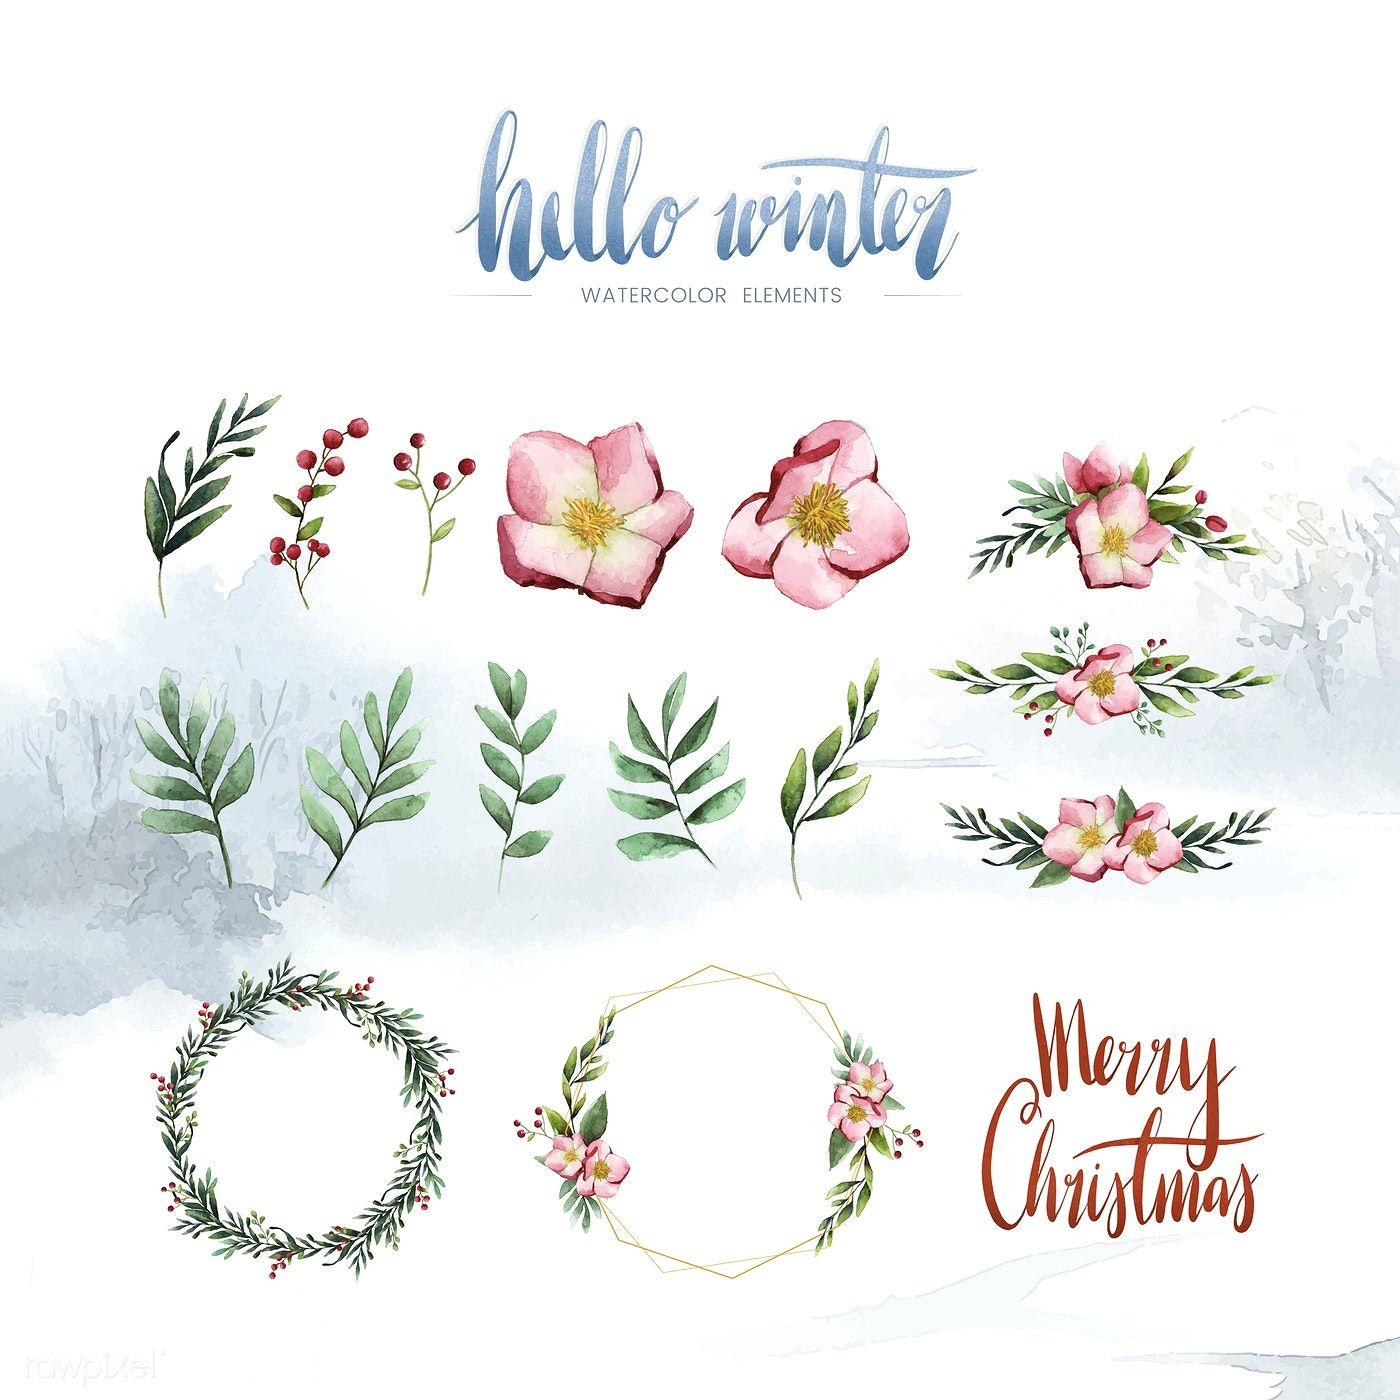 Watercolor winter bloom and elements vector free image